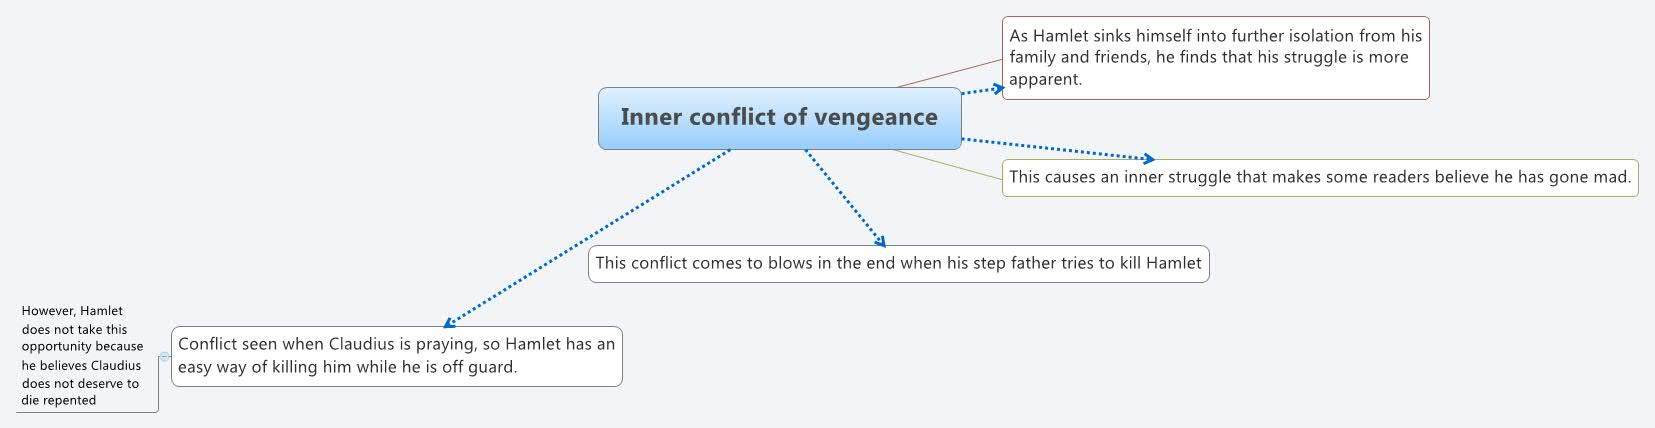 conflict in hamlet killing claudius The idea that hamlet at once hates his uncle for killing his father but at the same time is jealous in an oedipal form strikes at the heart at the inner conflict that hamlet is suffering from the.